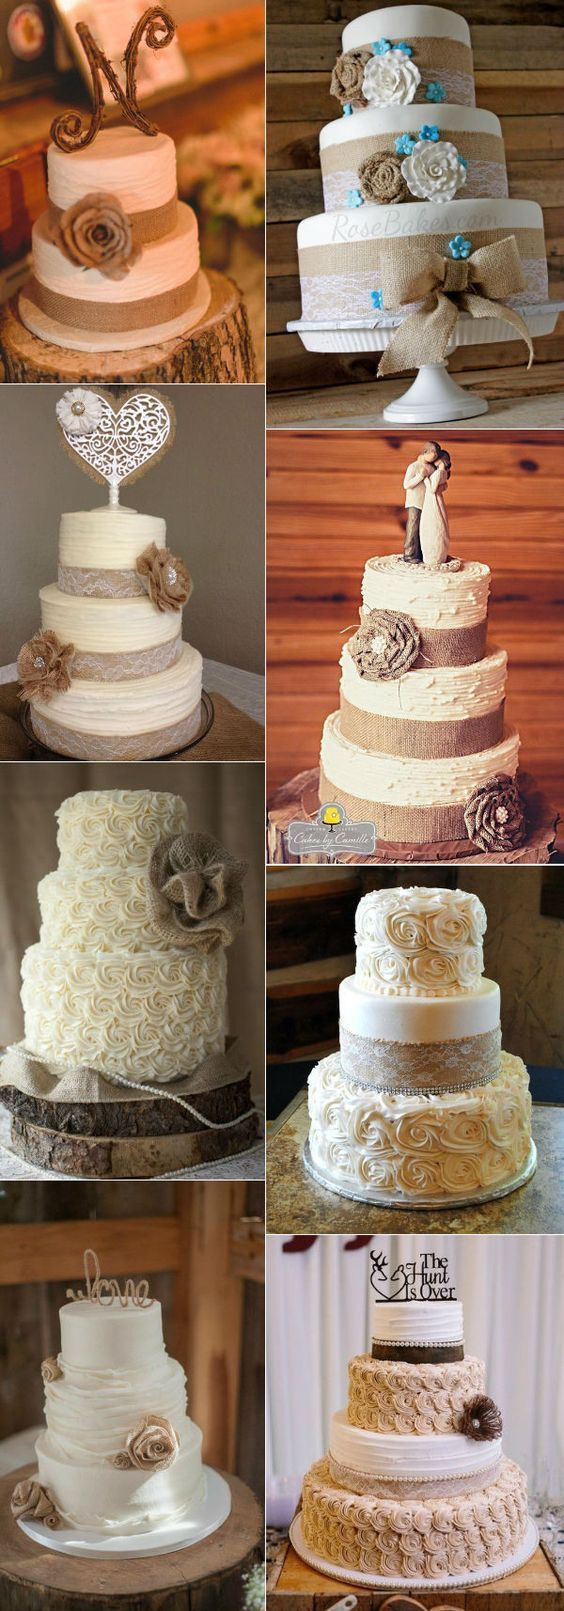 Country wedding cakes pictures - 32 Amazing Wedding Cakes Perfect For Fall